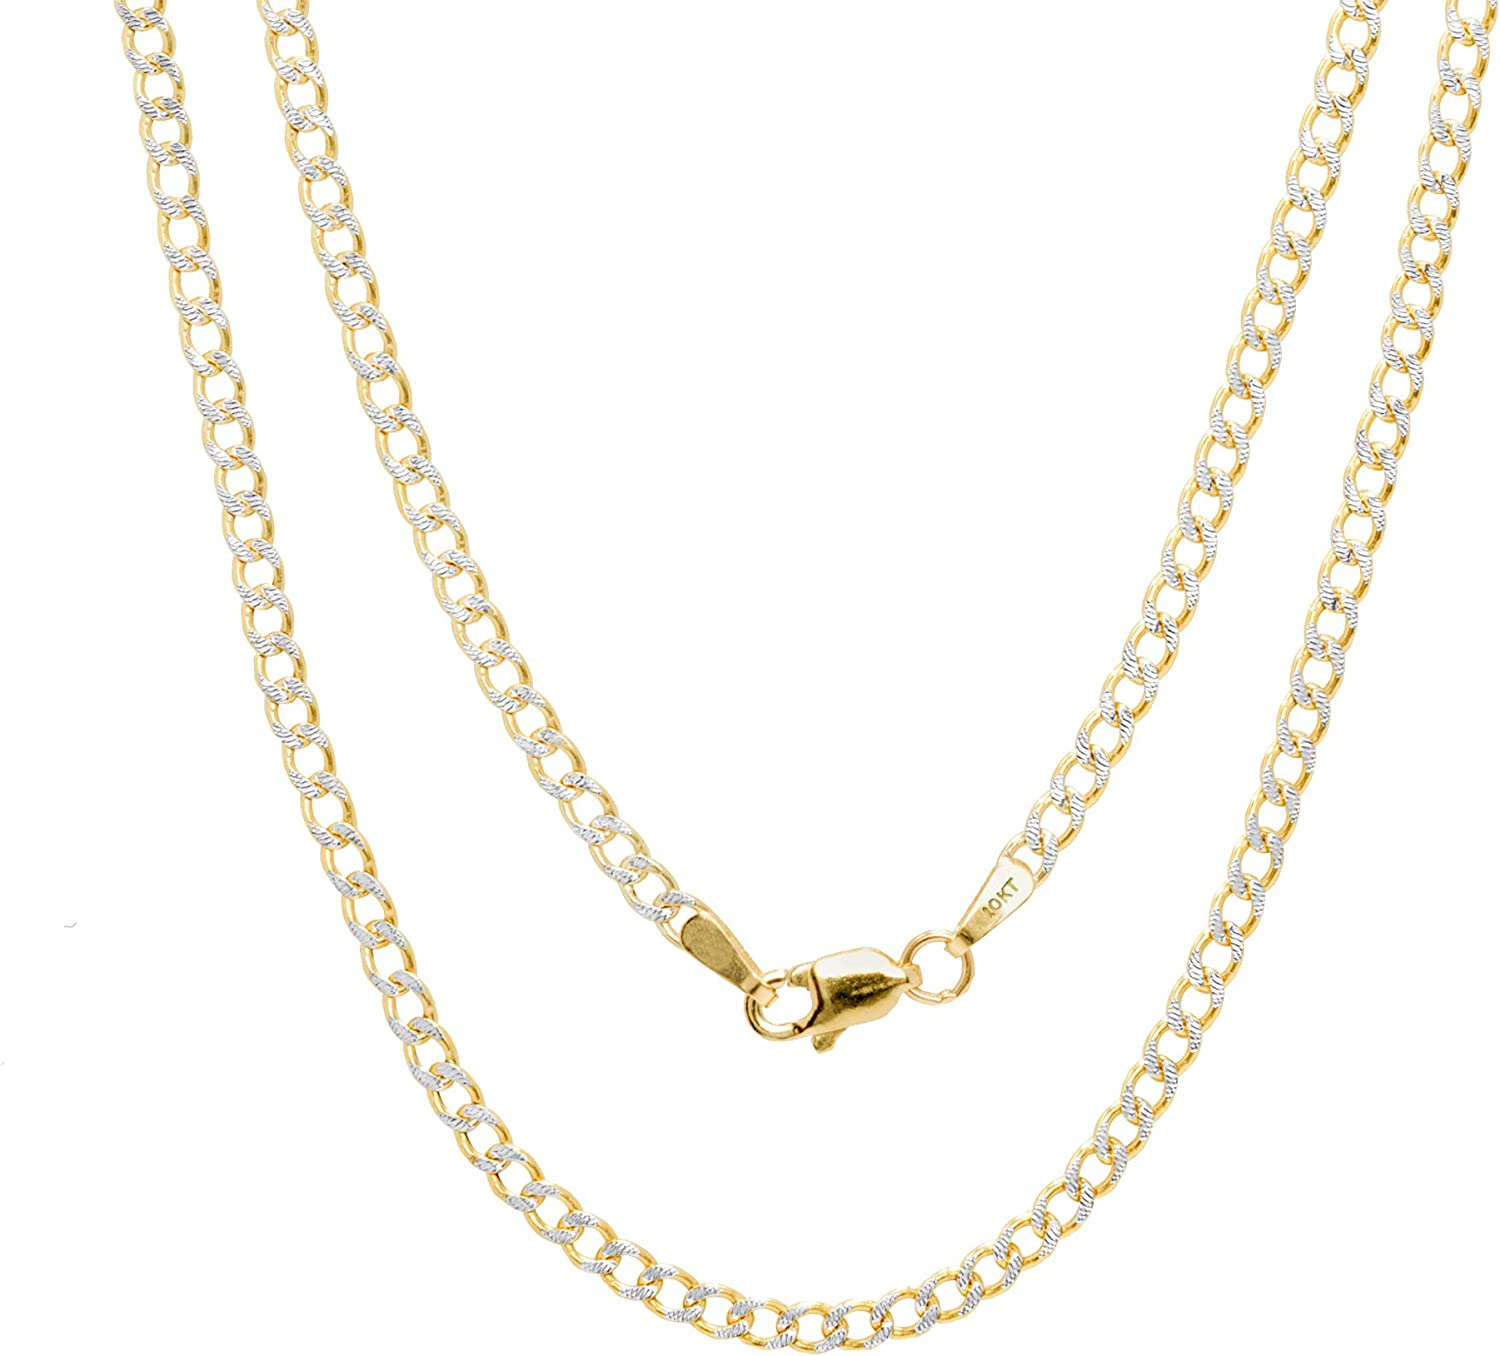 Nuragold 10k Yellow Gold 2.5mm Cuban Chain Curb Link Diamond Cut Pave Two Tone Pendant Necklace, Mens Womens Lobster Lock 16